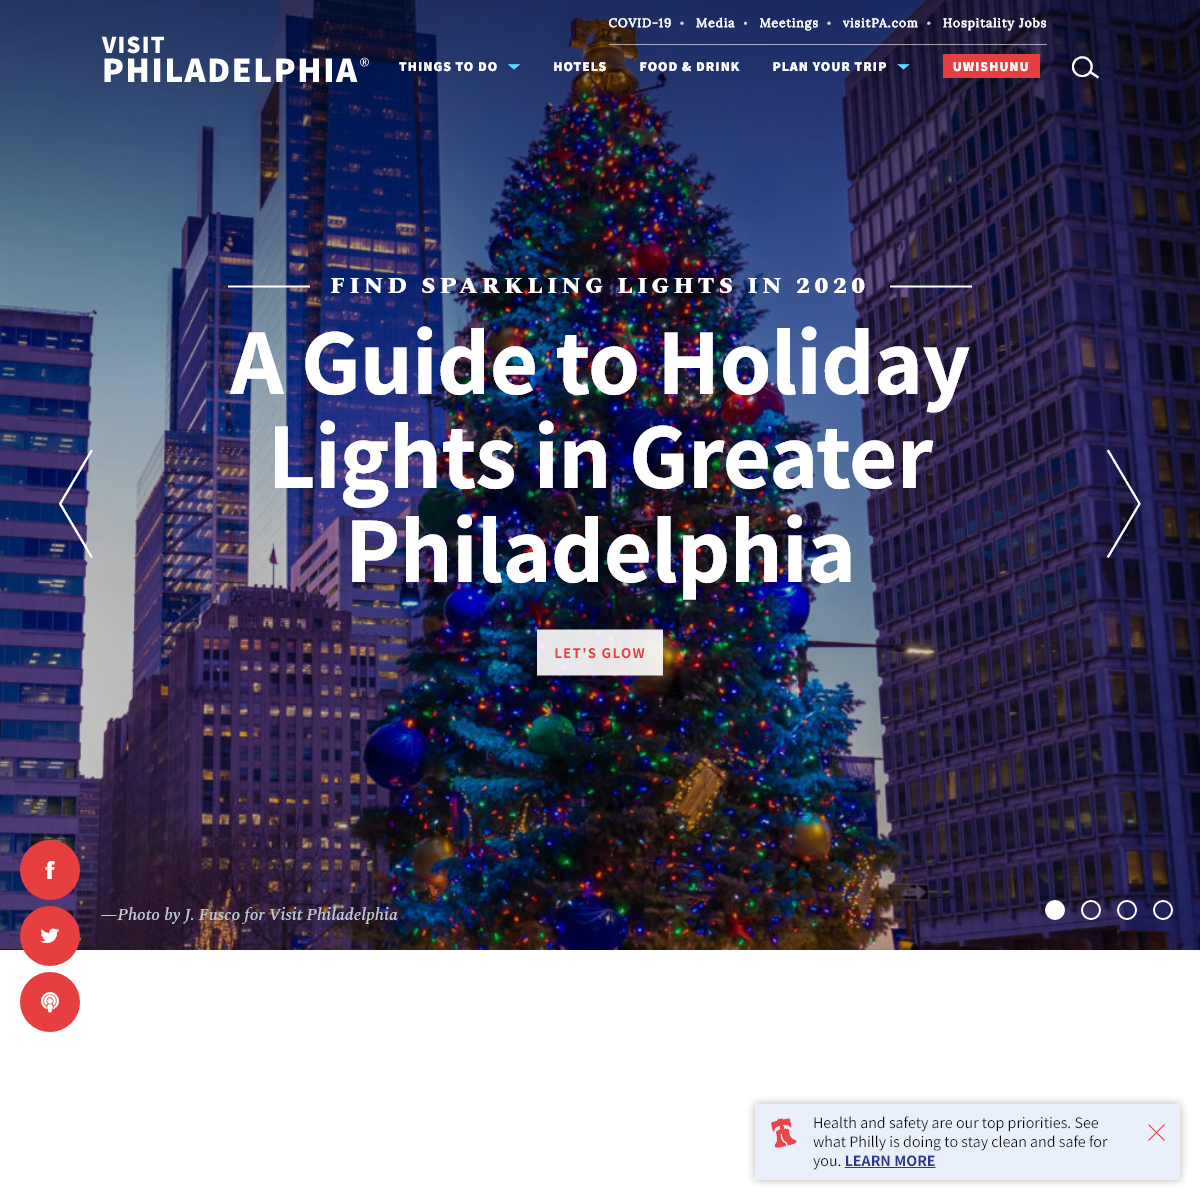 Official Philly Tourism and Visitor Information - Visit Philadelphia